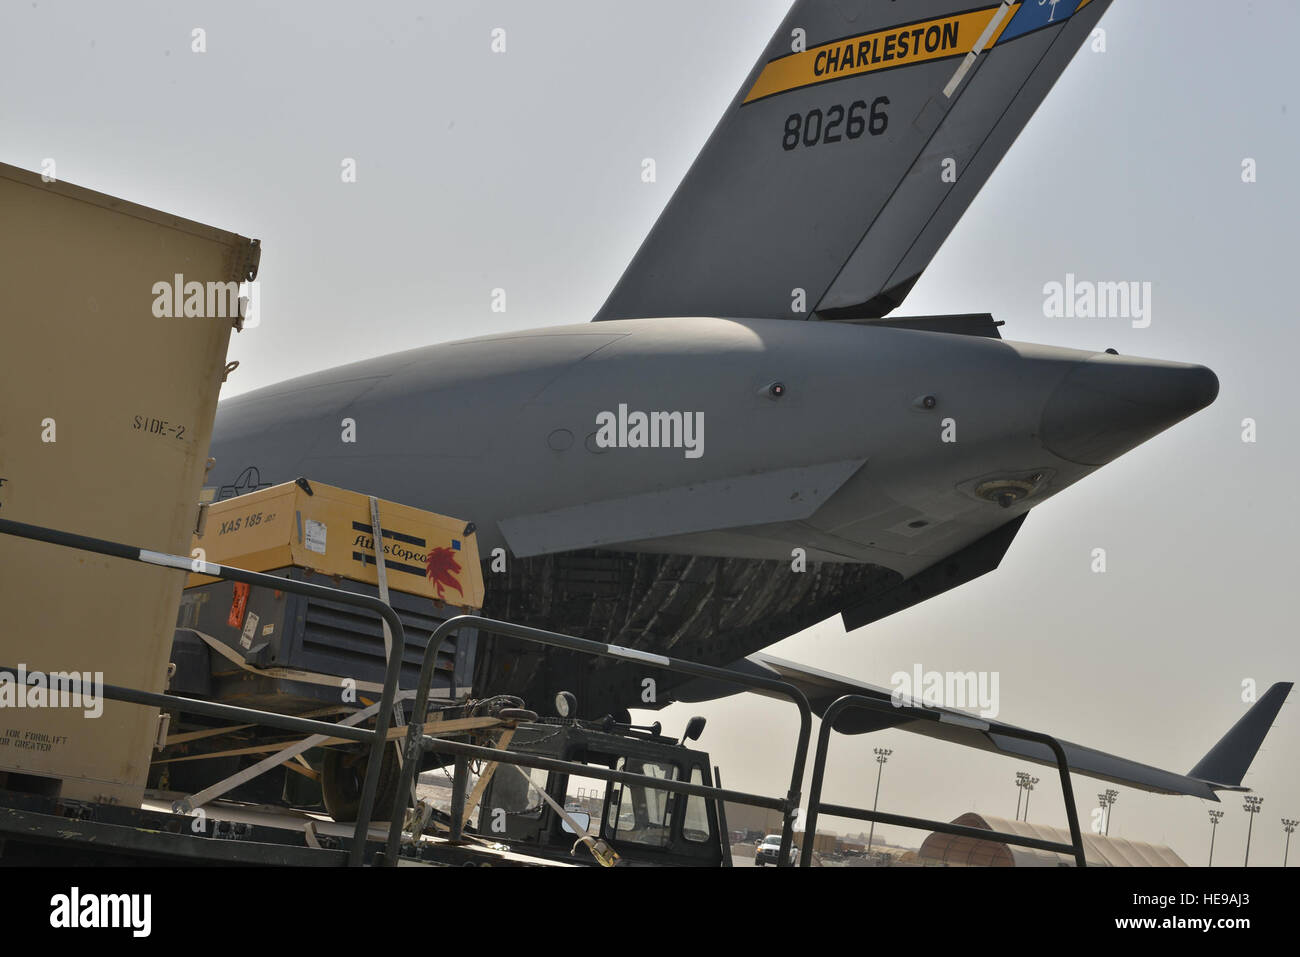 A C-17 Globemaster aircraft assigned to the 437th Air Lift Wing, Joint Base Charleston, S.C., is prepared to be - Stock Image